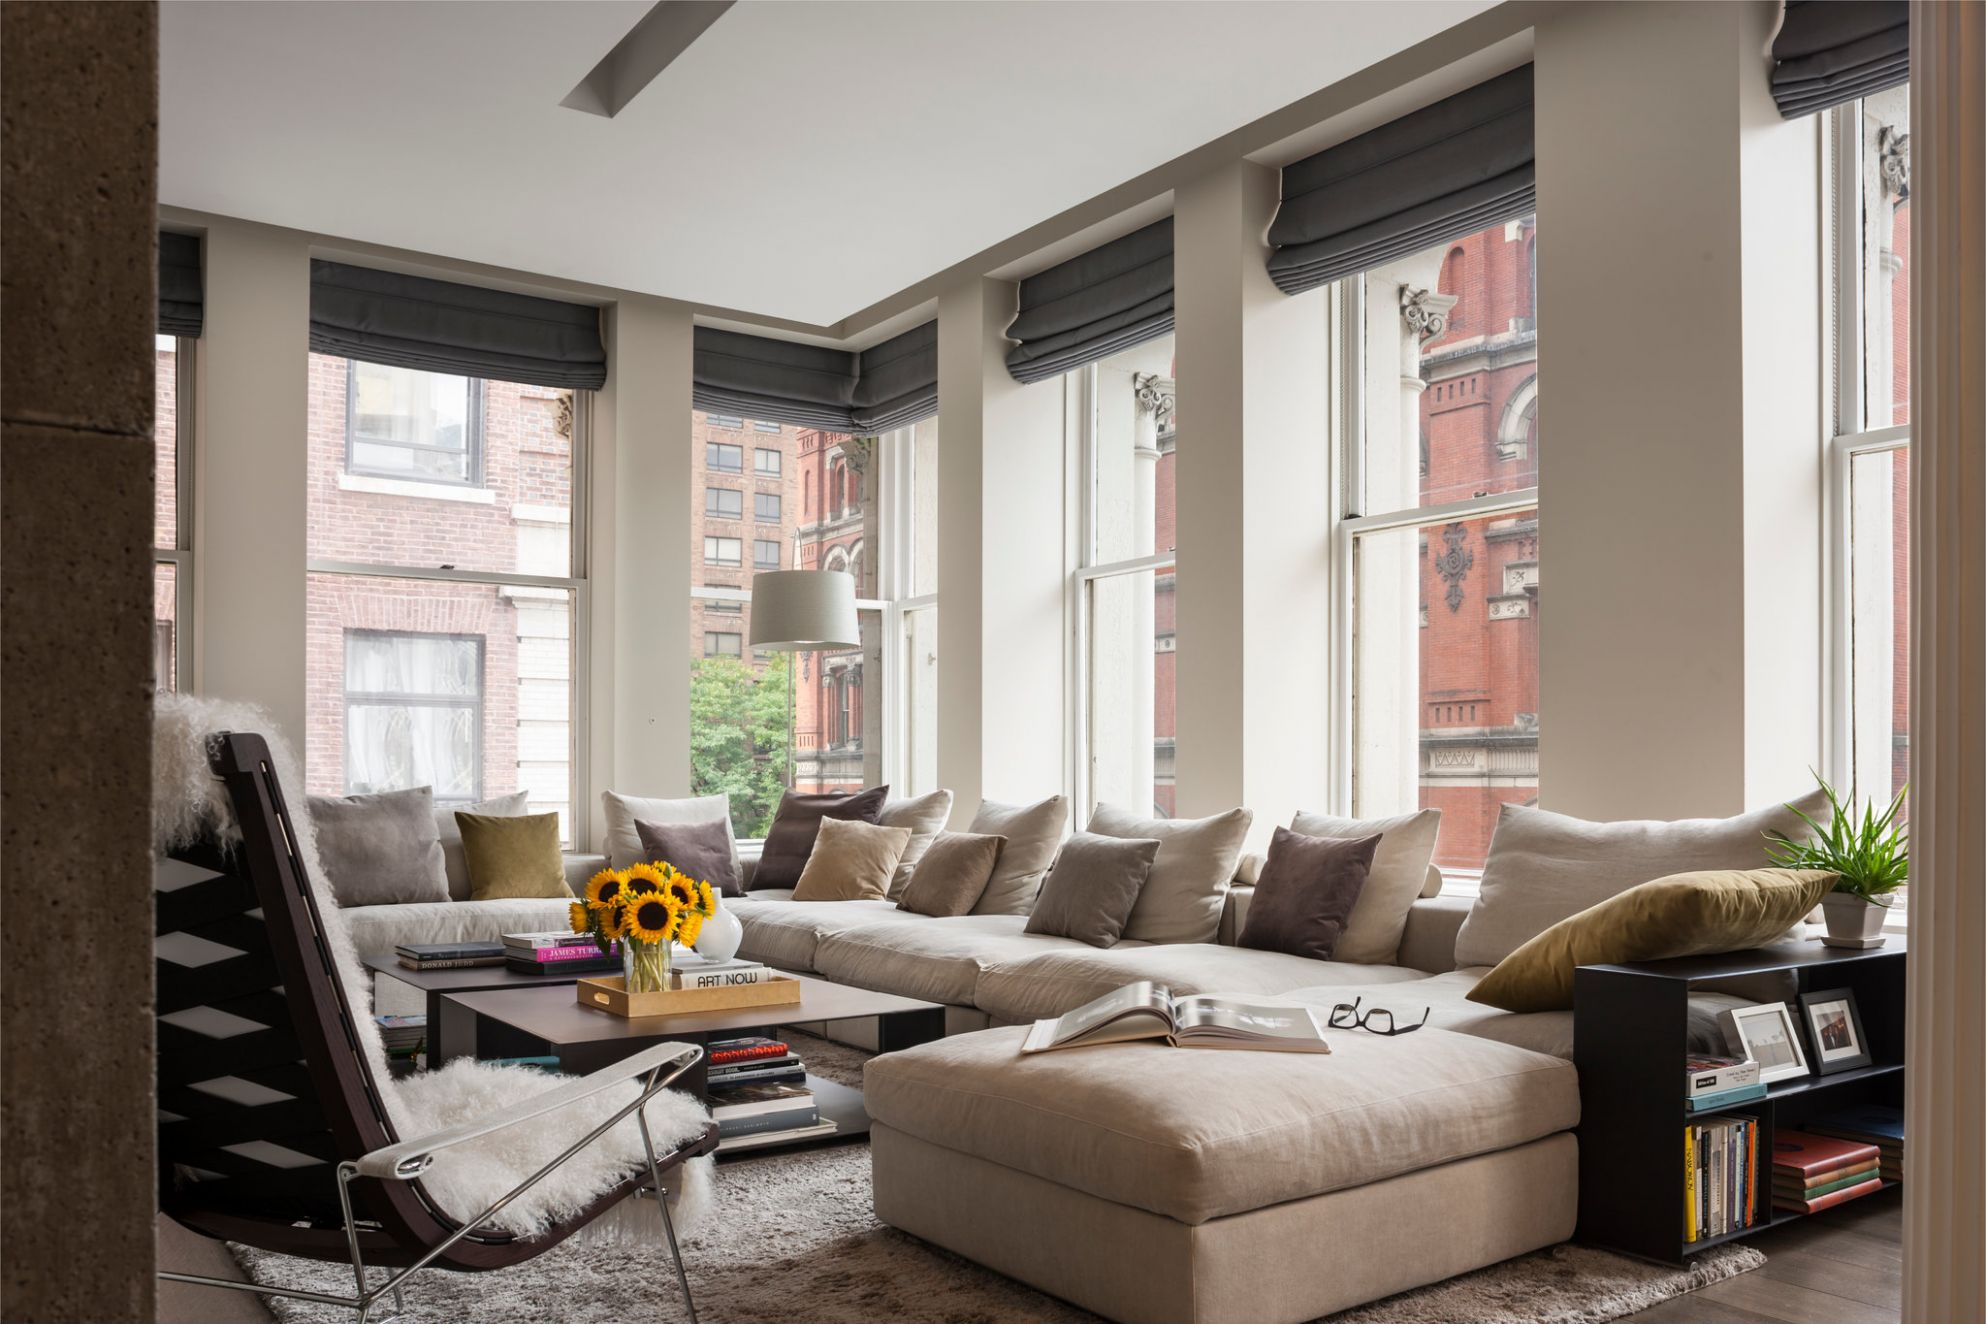 How to Buy a Sectional Sofa - The New York Times